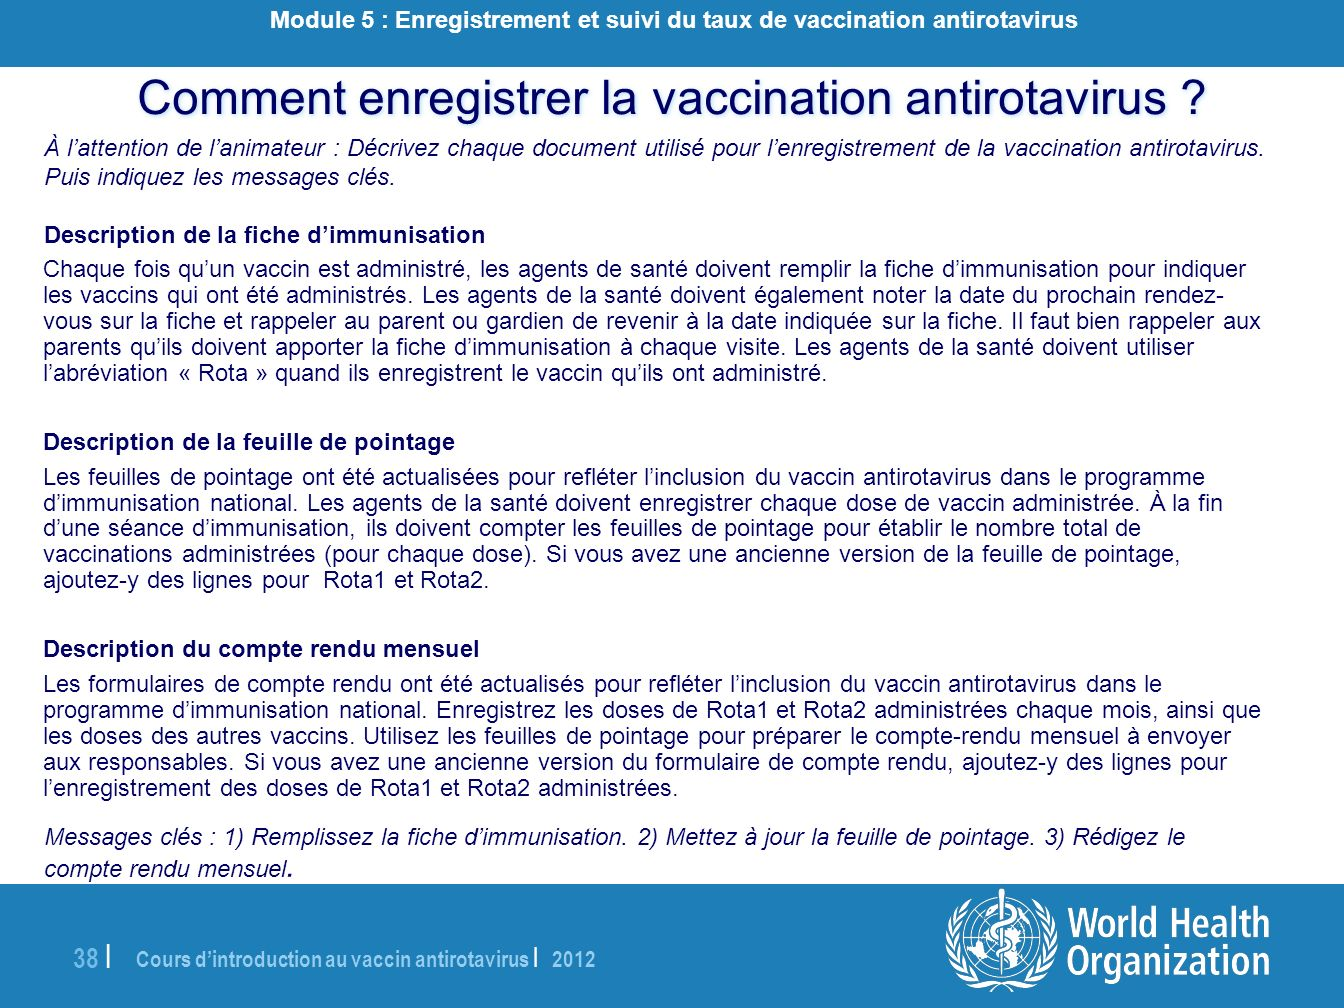 Comment enregistrer la vaccination antirotavirus